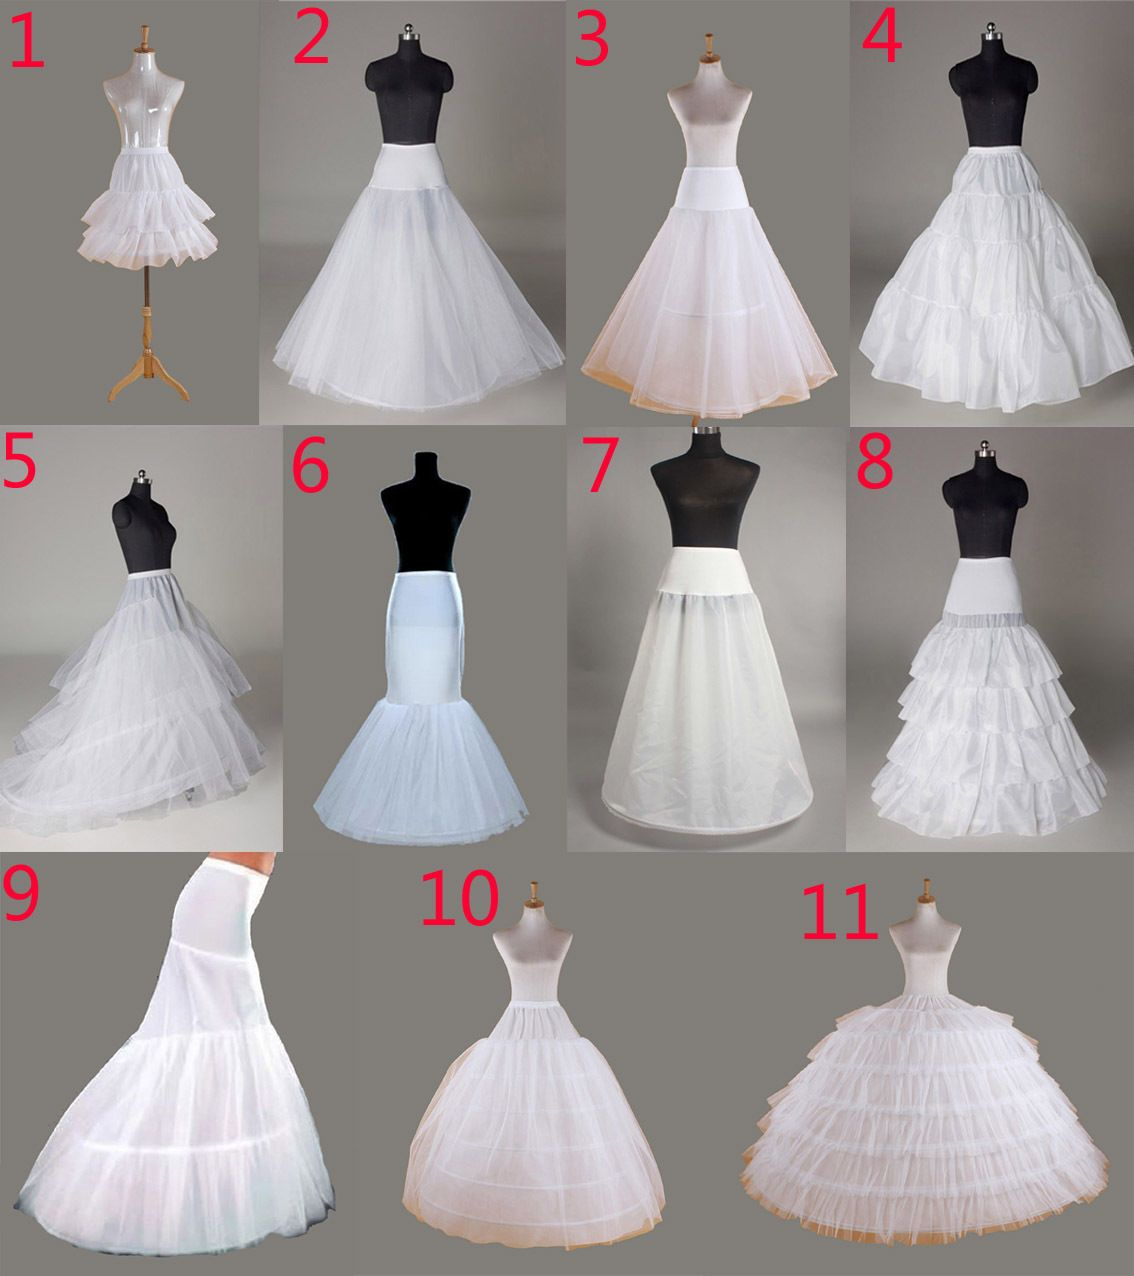 Petticoat for wedding dress  Petticoat crinoline hoopless underskirt Wedding petticoat fishtail